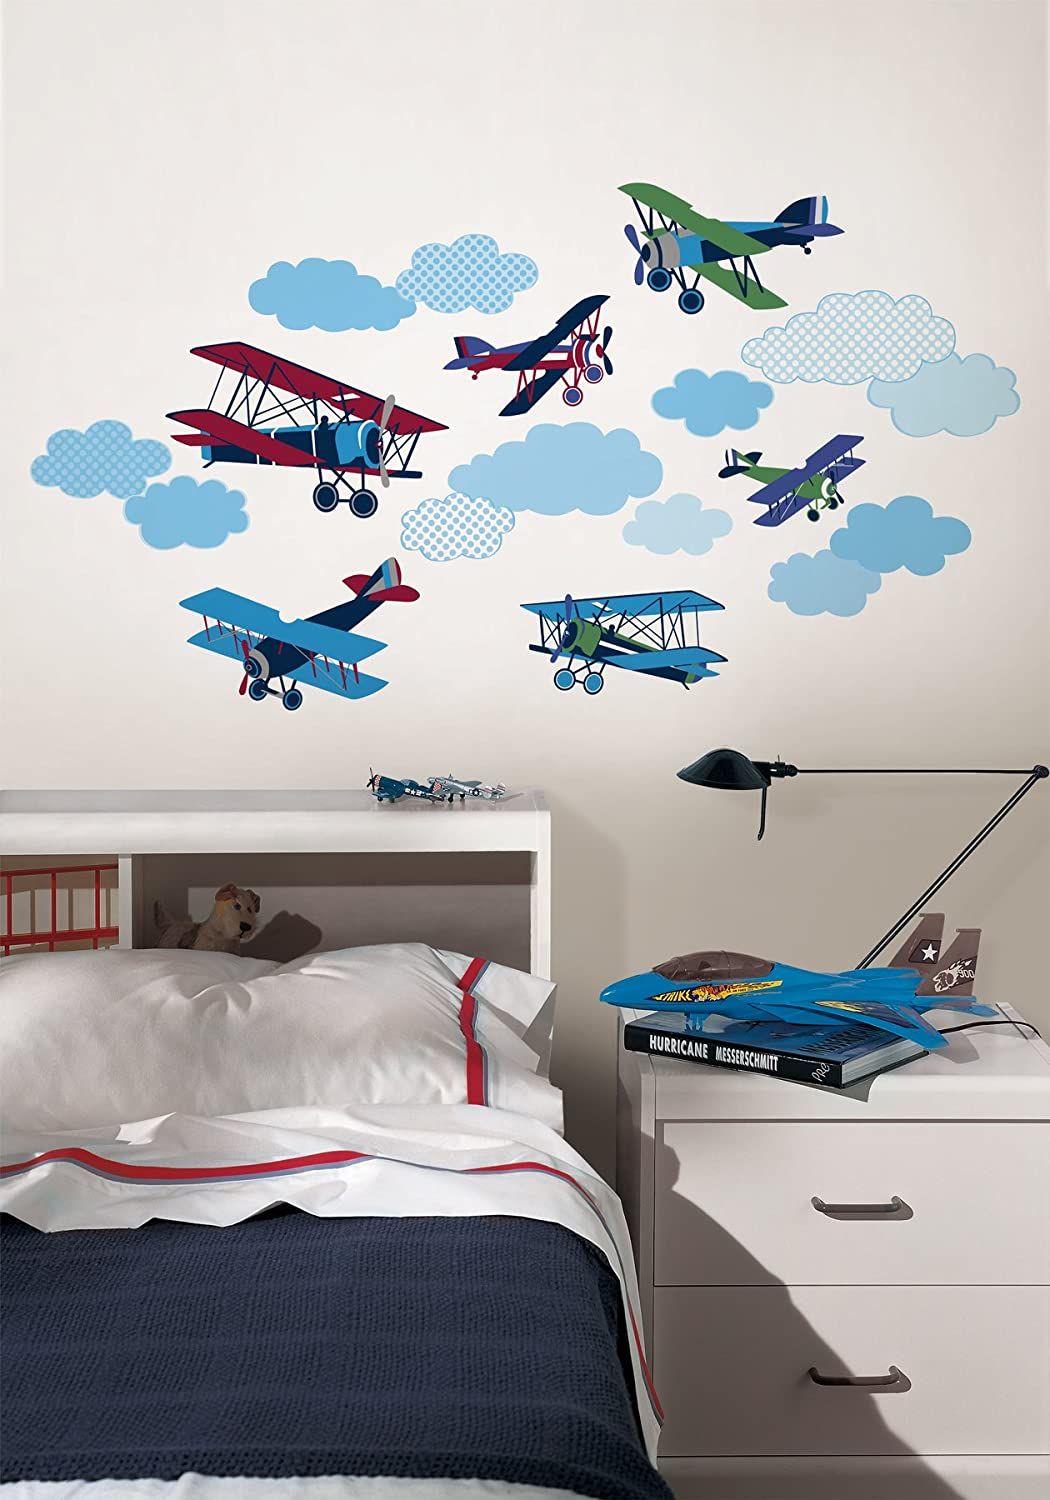 wall pops wpk0629 mighty vintage planes wall decals decorative wall pops wpk0629 mighty vintage planes wall decals decorative wall appliques amazon com